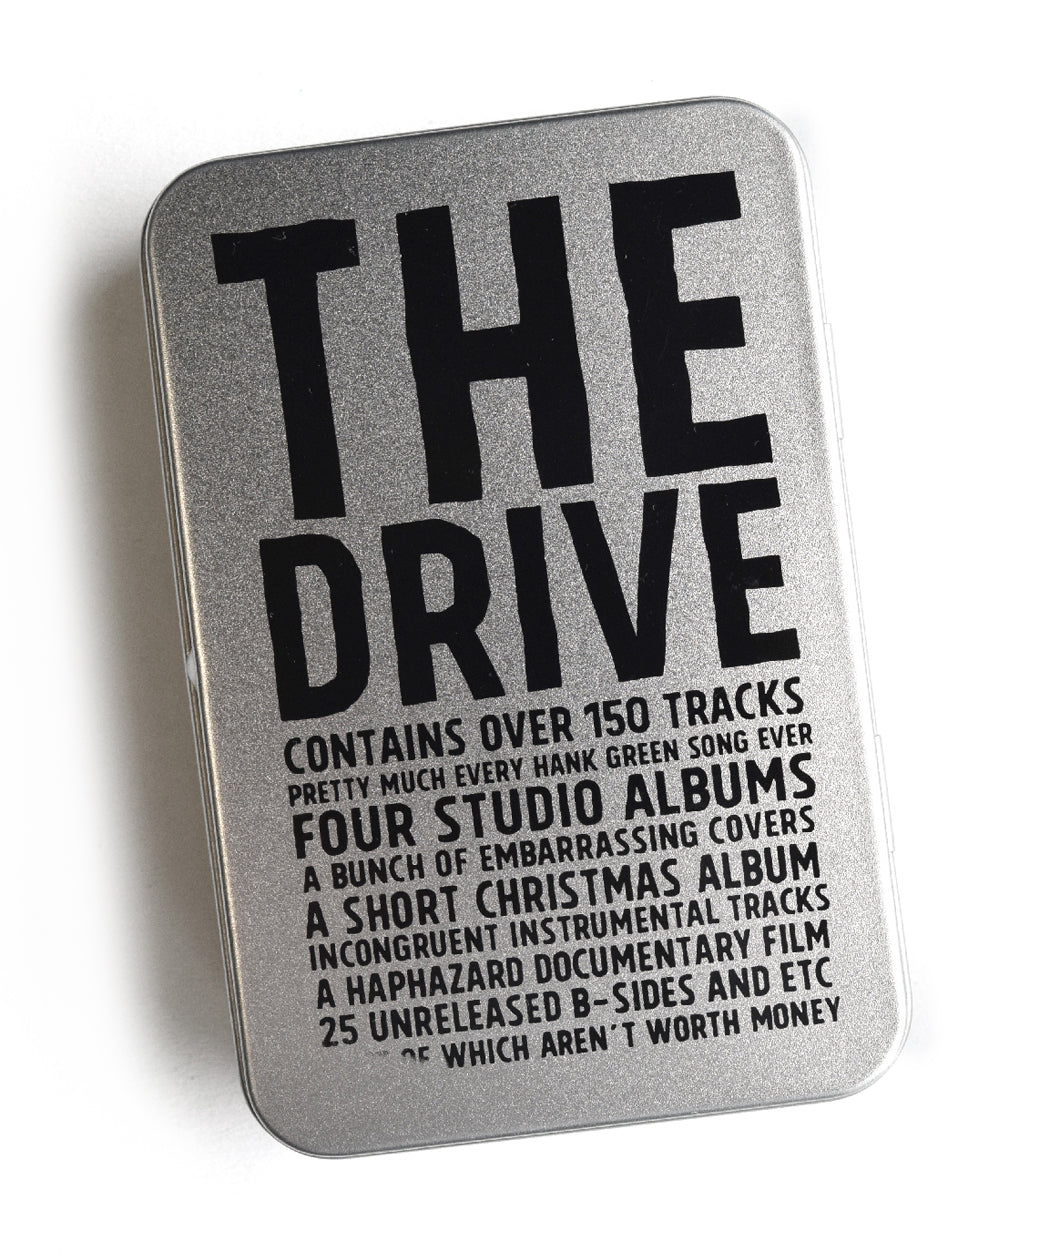 Hank Green Flash Drive